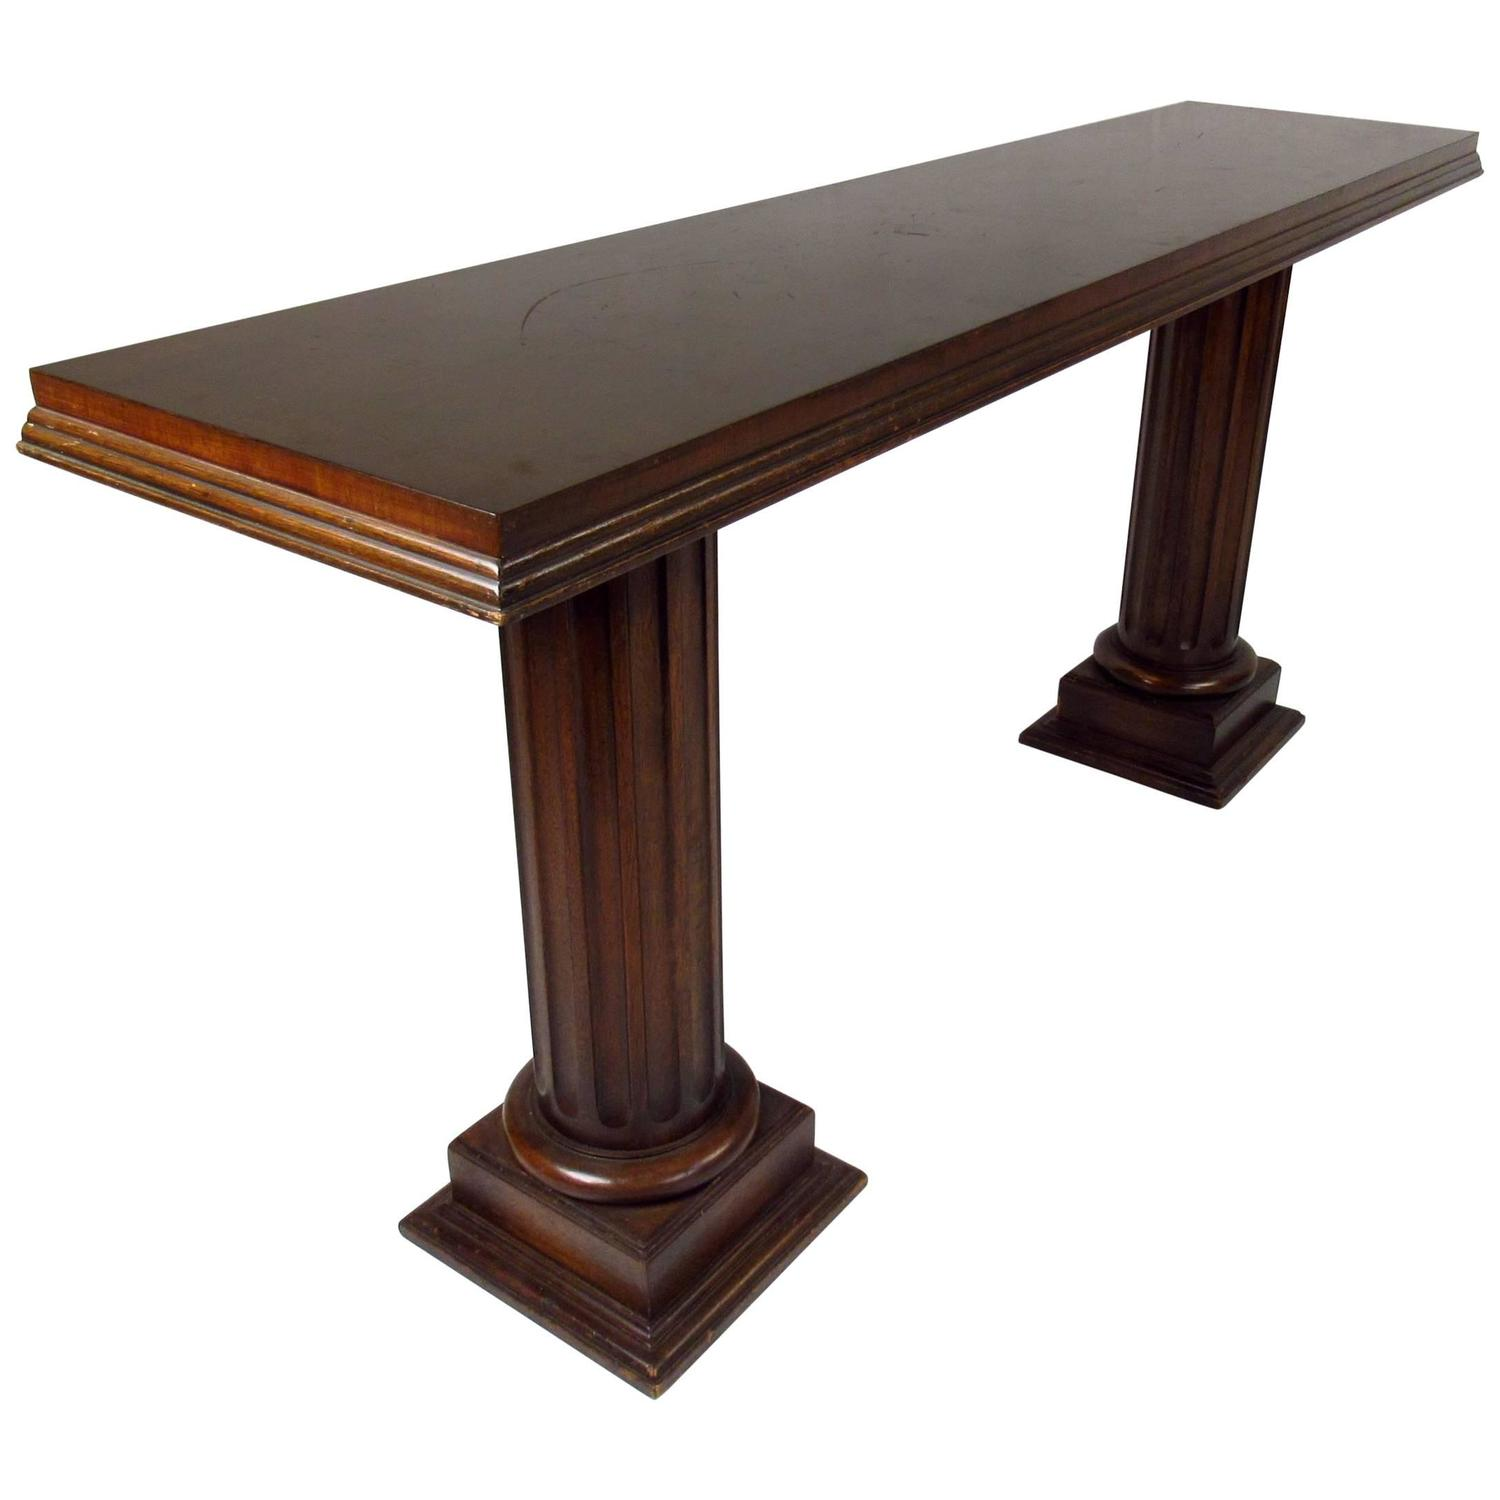 Midcentury double column sculpted console table at 1stdibs for Table column